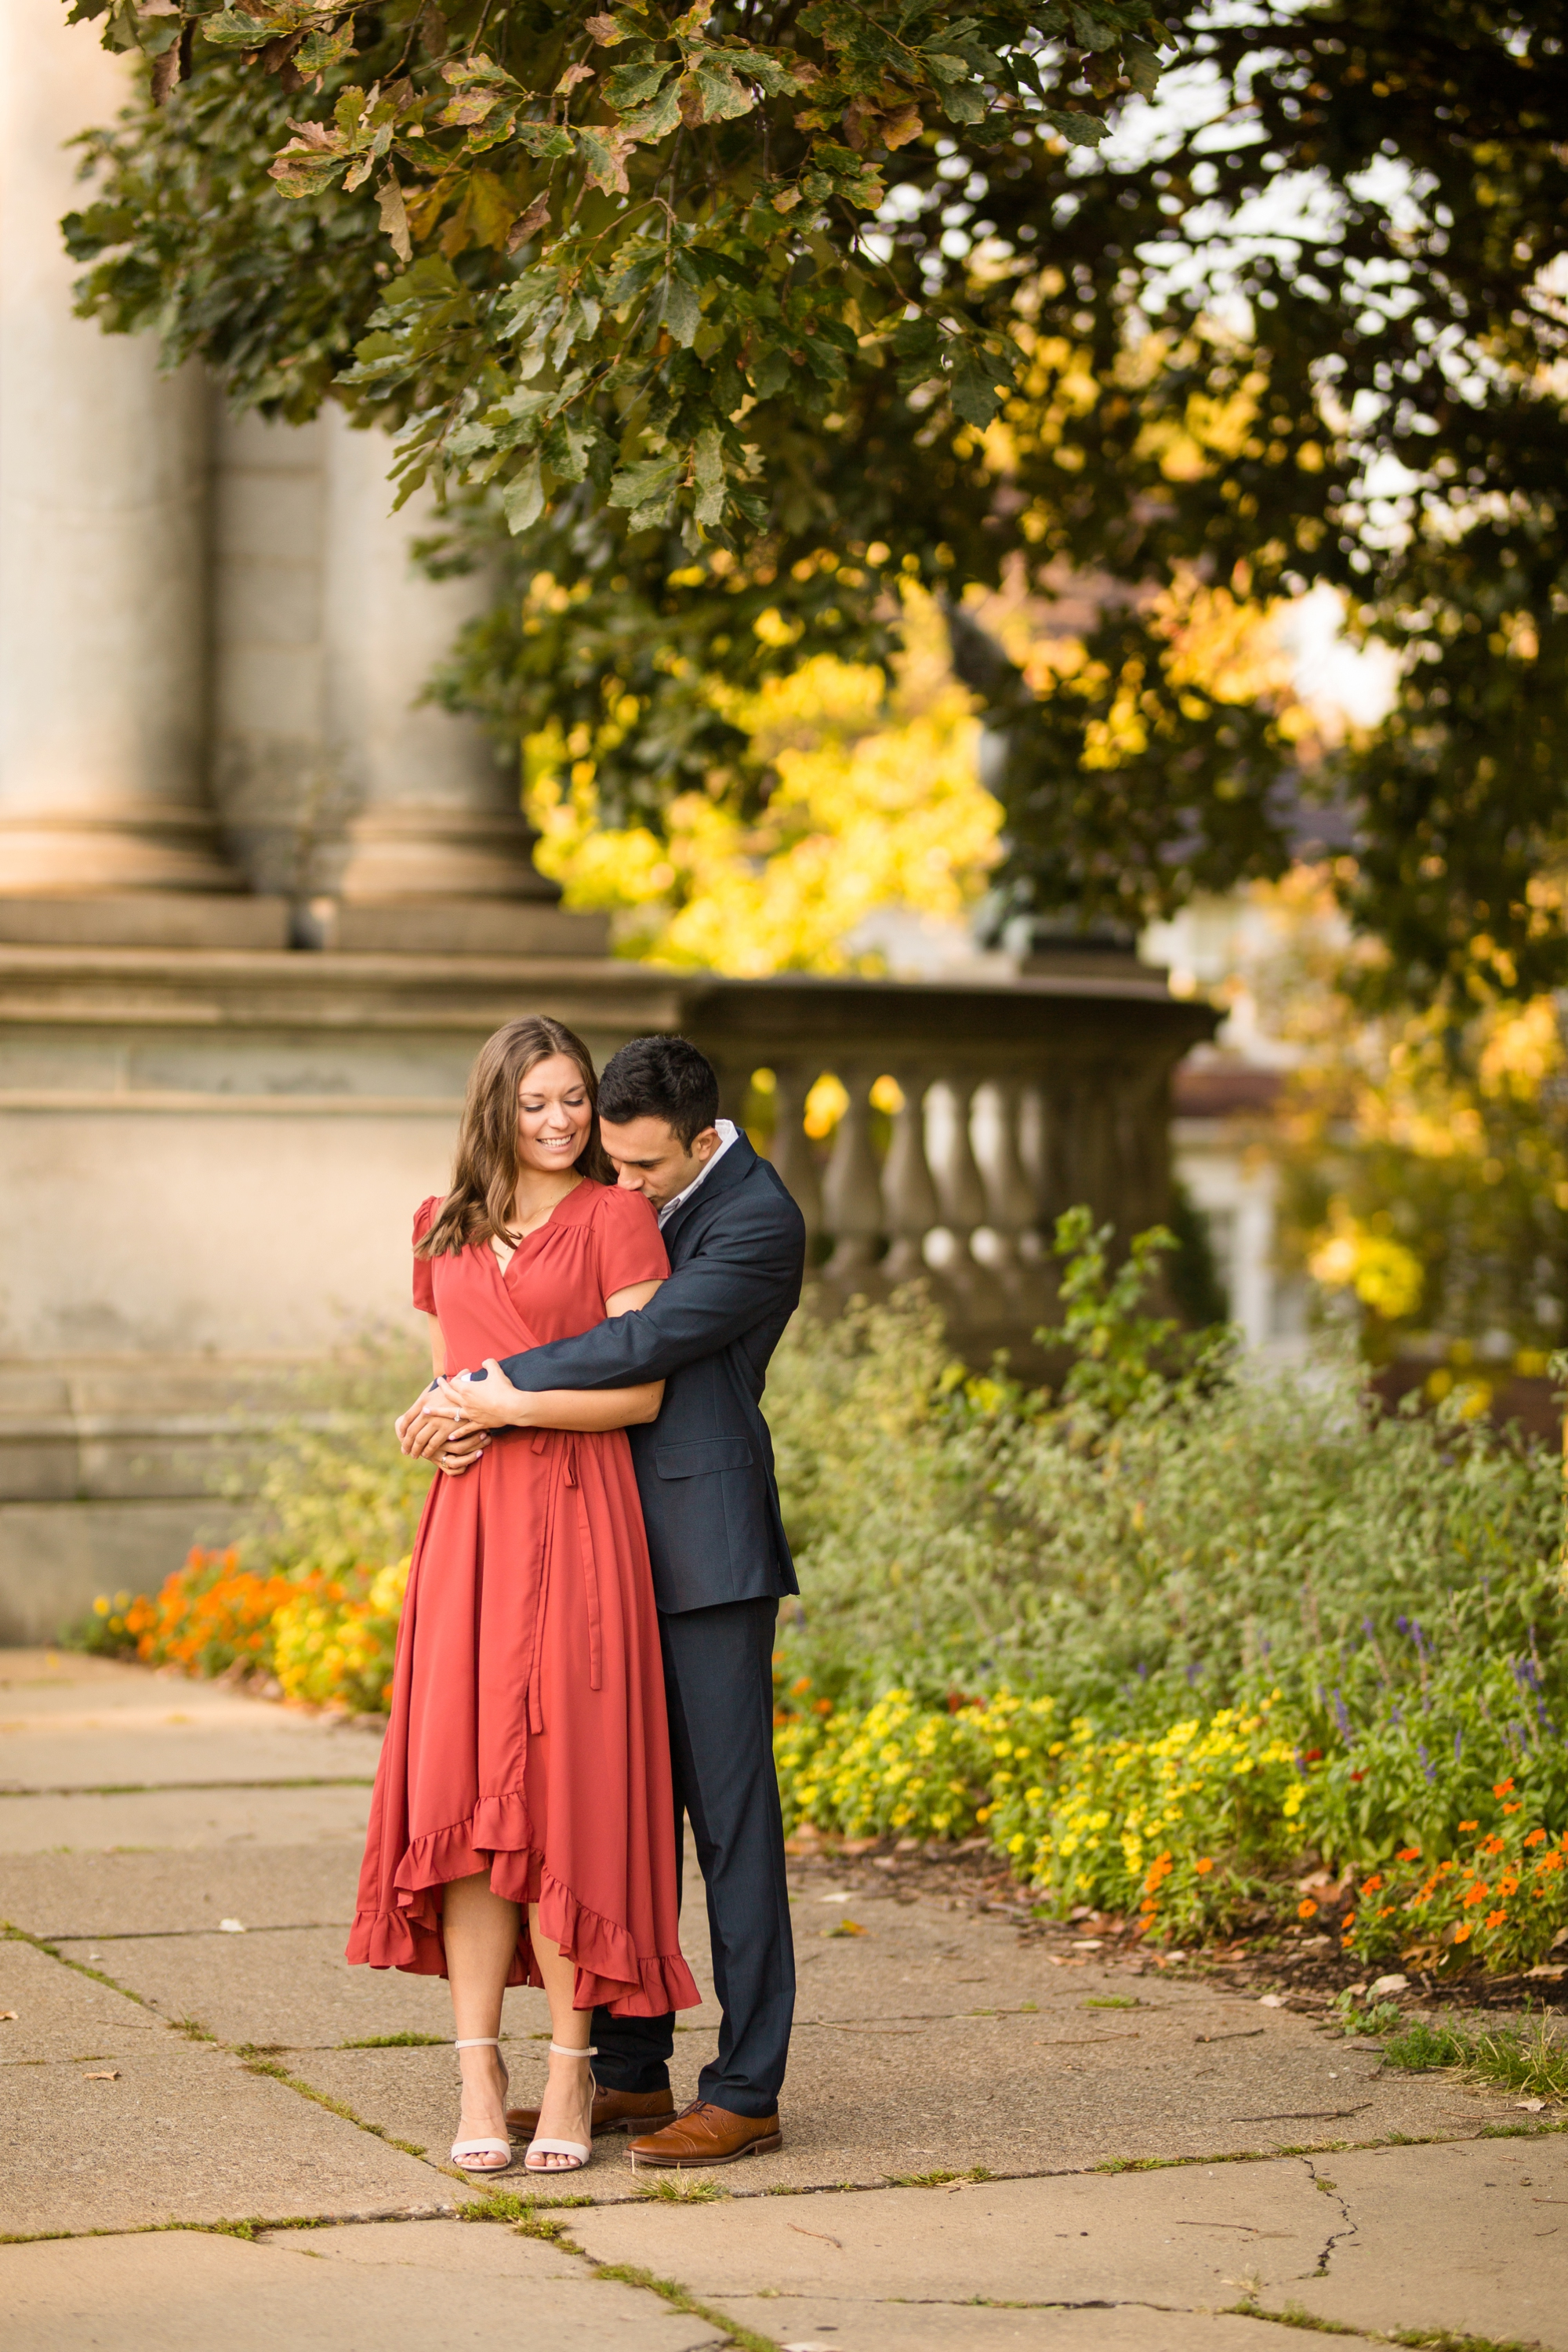 pittsburgh wedding photographer, pittsburgh engagement photos, best spot in pittsburgh for photo shoot, highland park engagement pictures, downtown pittsburgh engagement photos